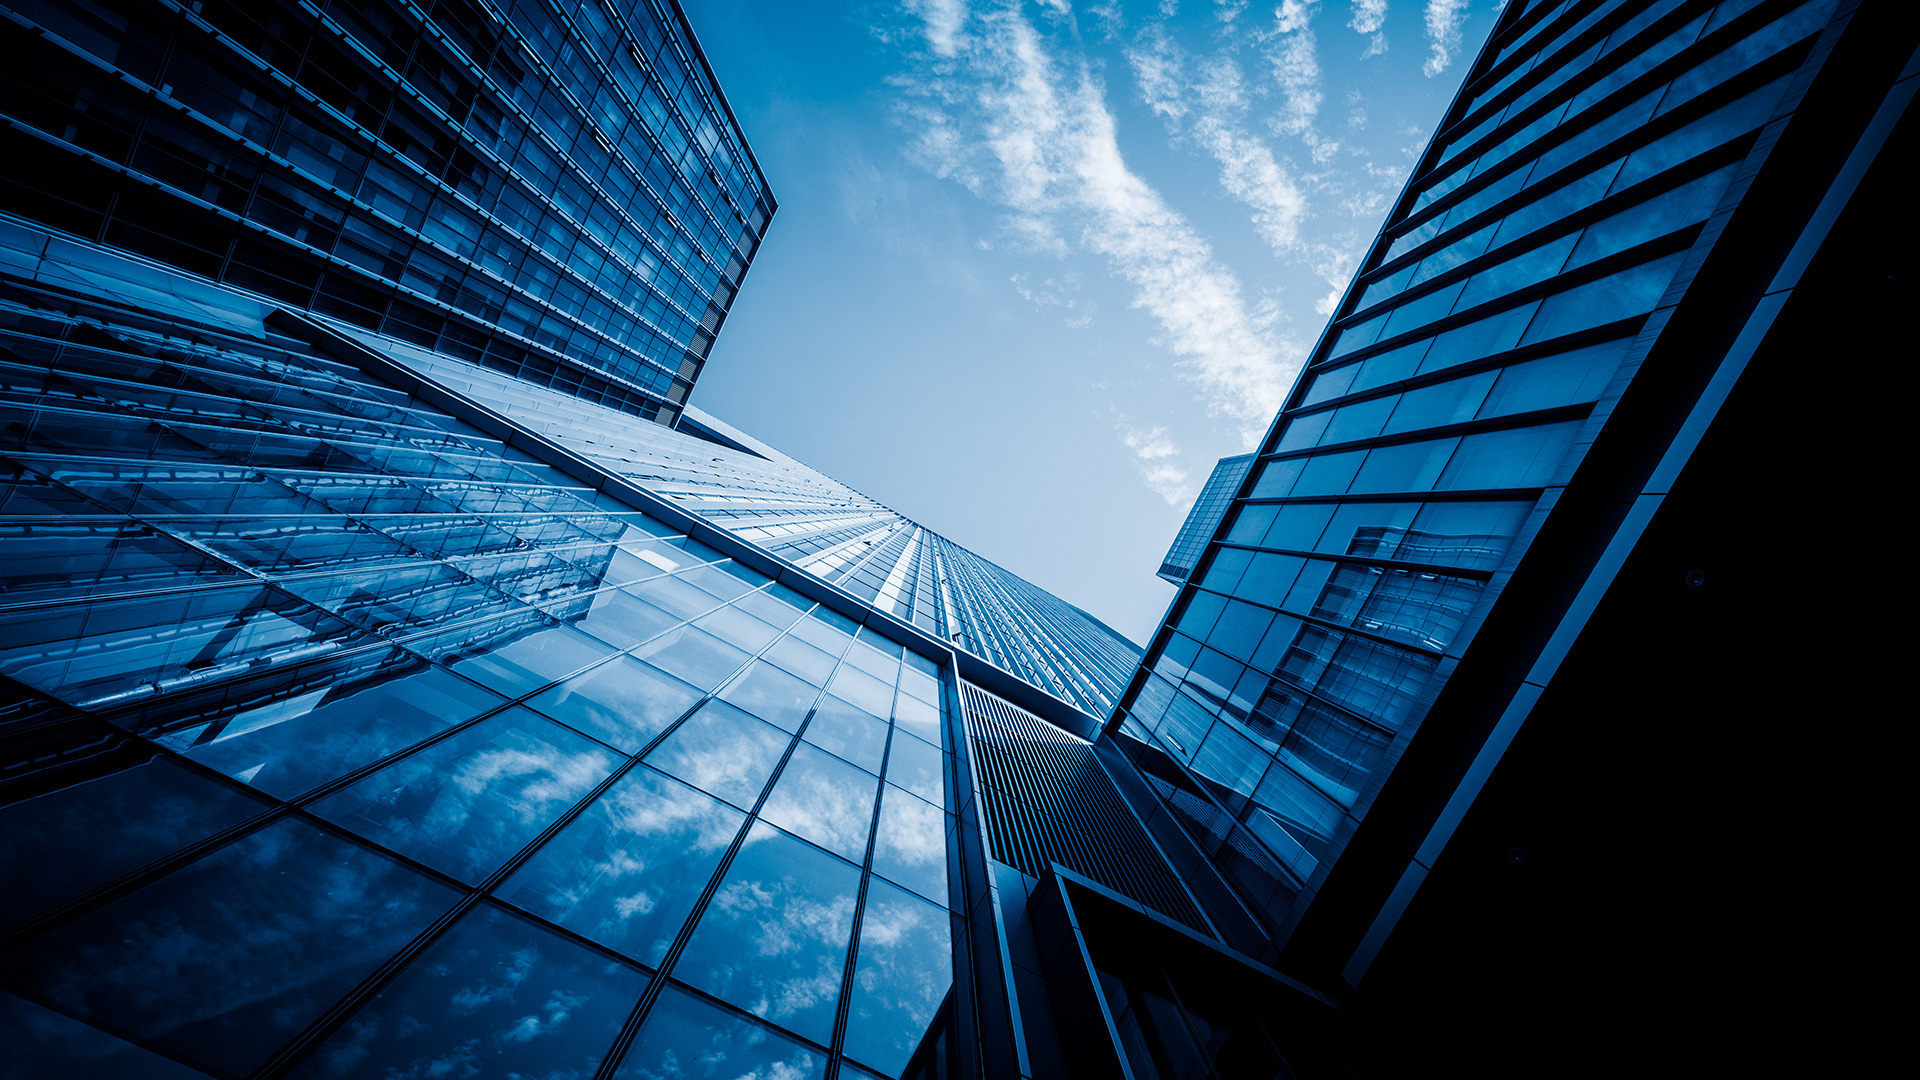 Financial-institutions-architecture-corporate-building